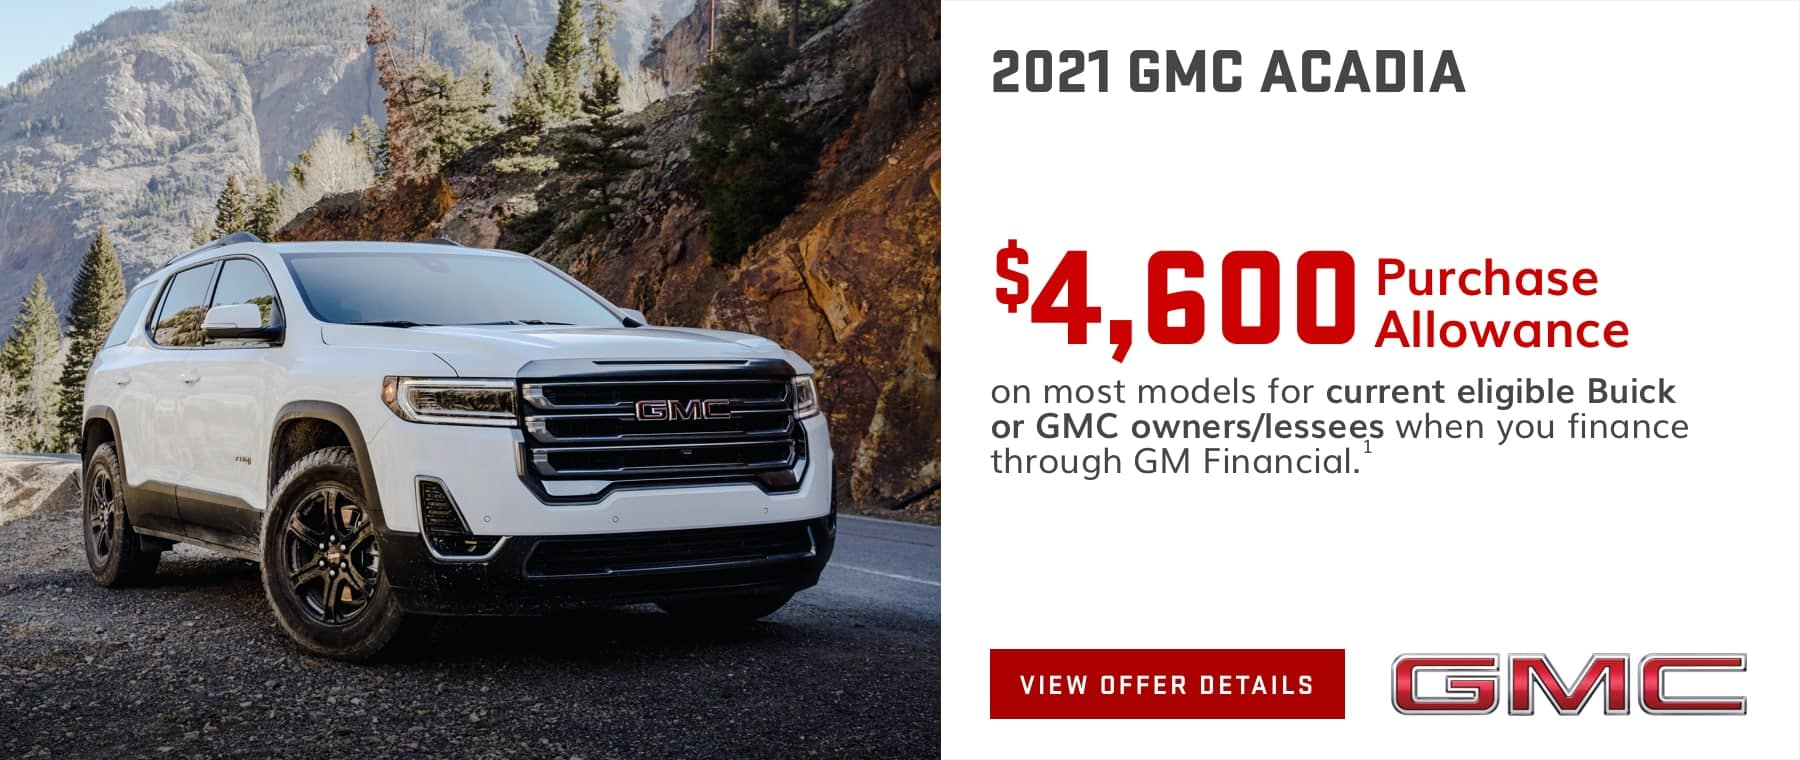 $4,600 Purchase Allowance on most models for current eligible Buick or GMC owners/lessees when you finance through GM Financial.1